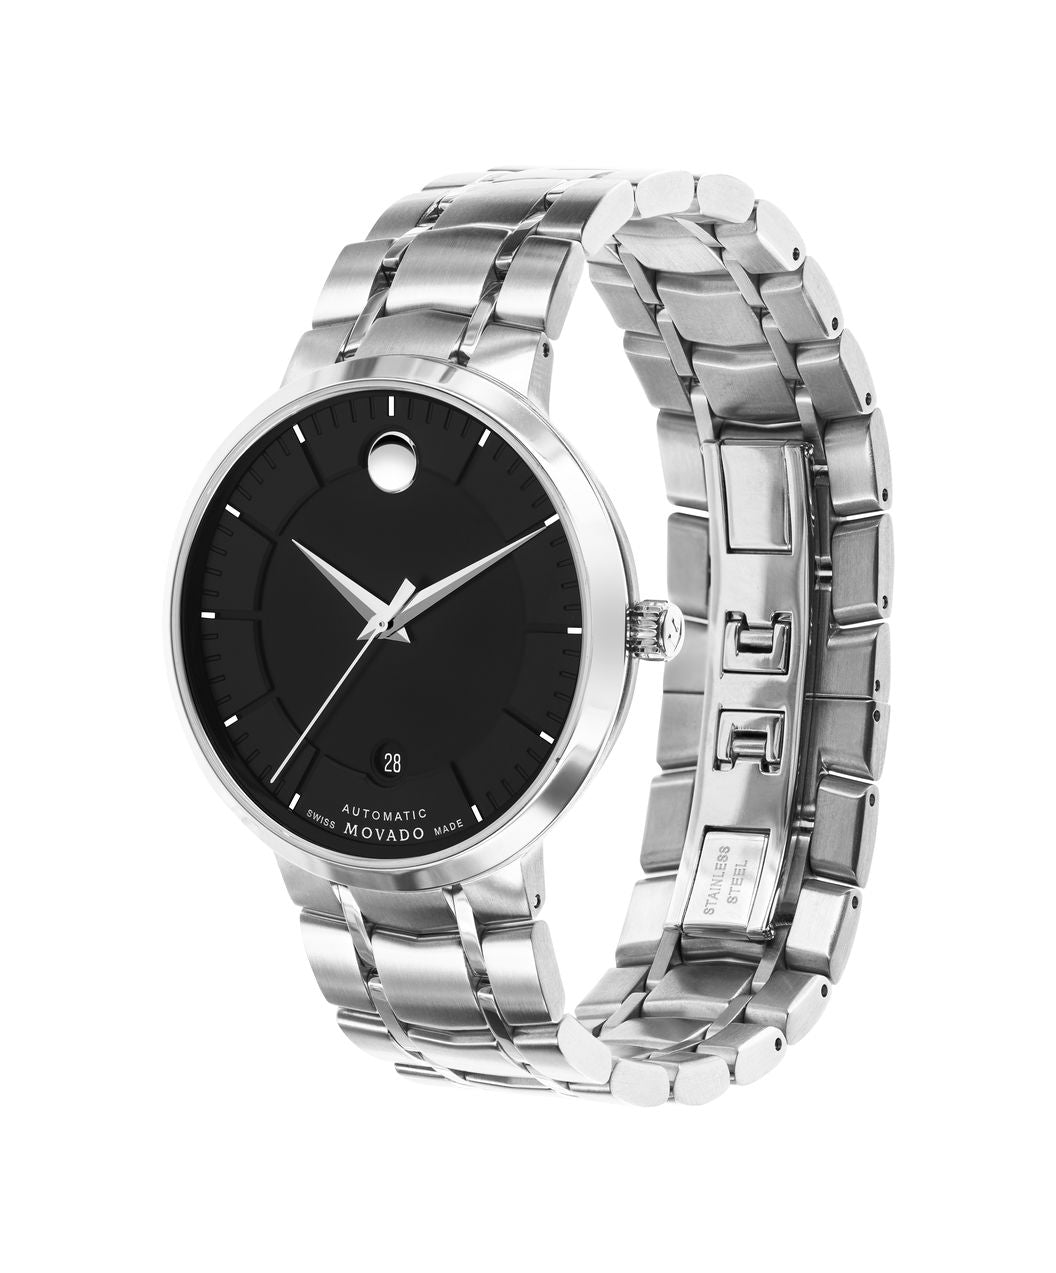 Mens Movado 1881 Automatic - Stainless Steel